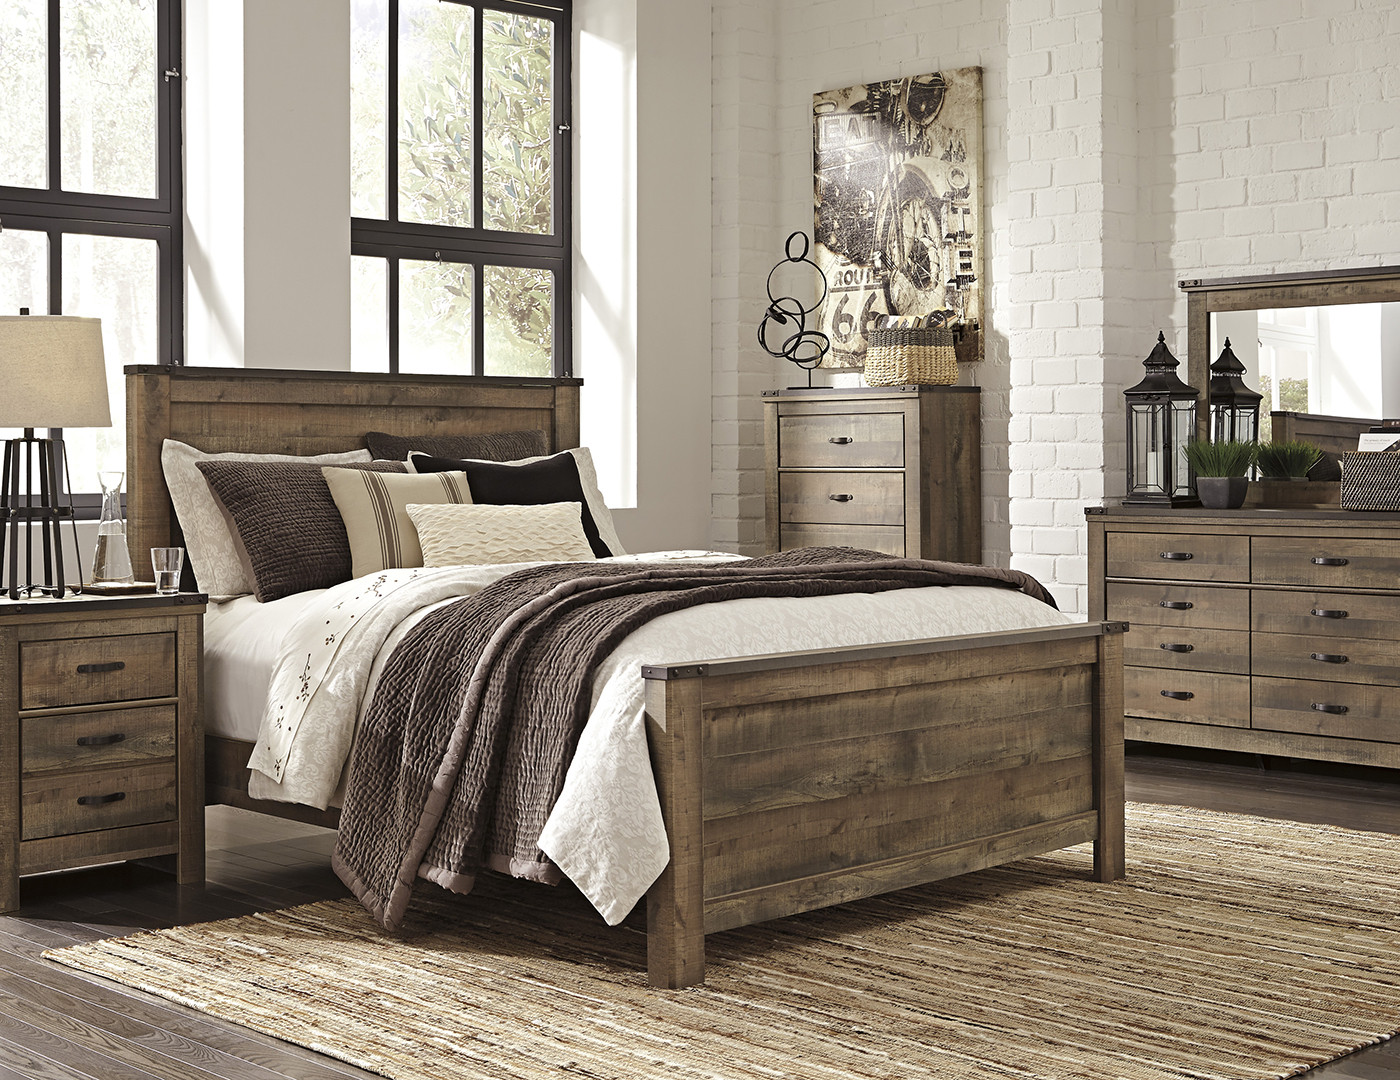 Best ideas about Queen Bedroom Sets . Save or Pin Trinell 5 pc Queen Bedroom Set Now.